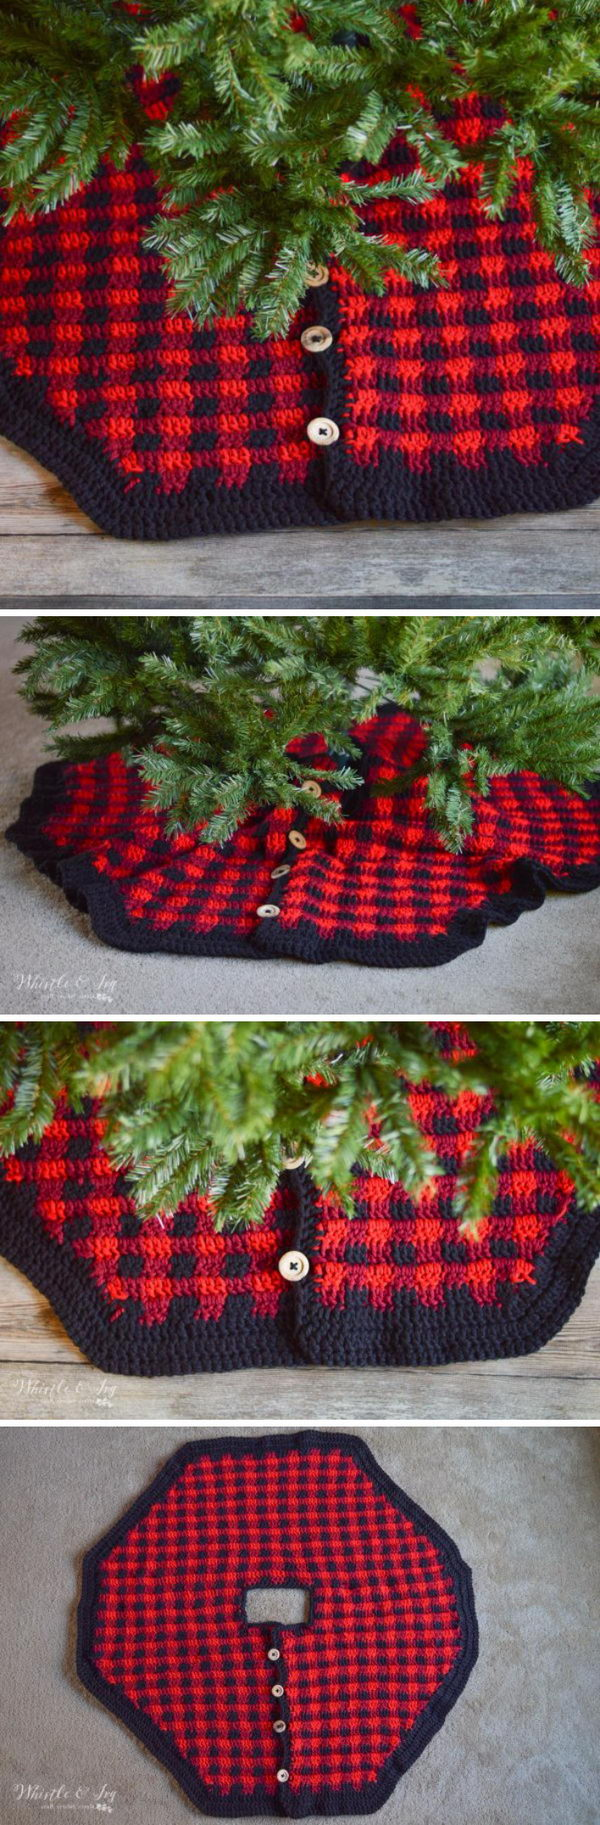 10 Crochet Christmas Tree Skirt Ideas 2017